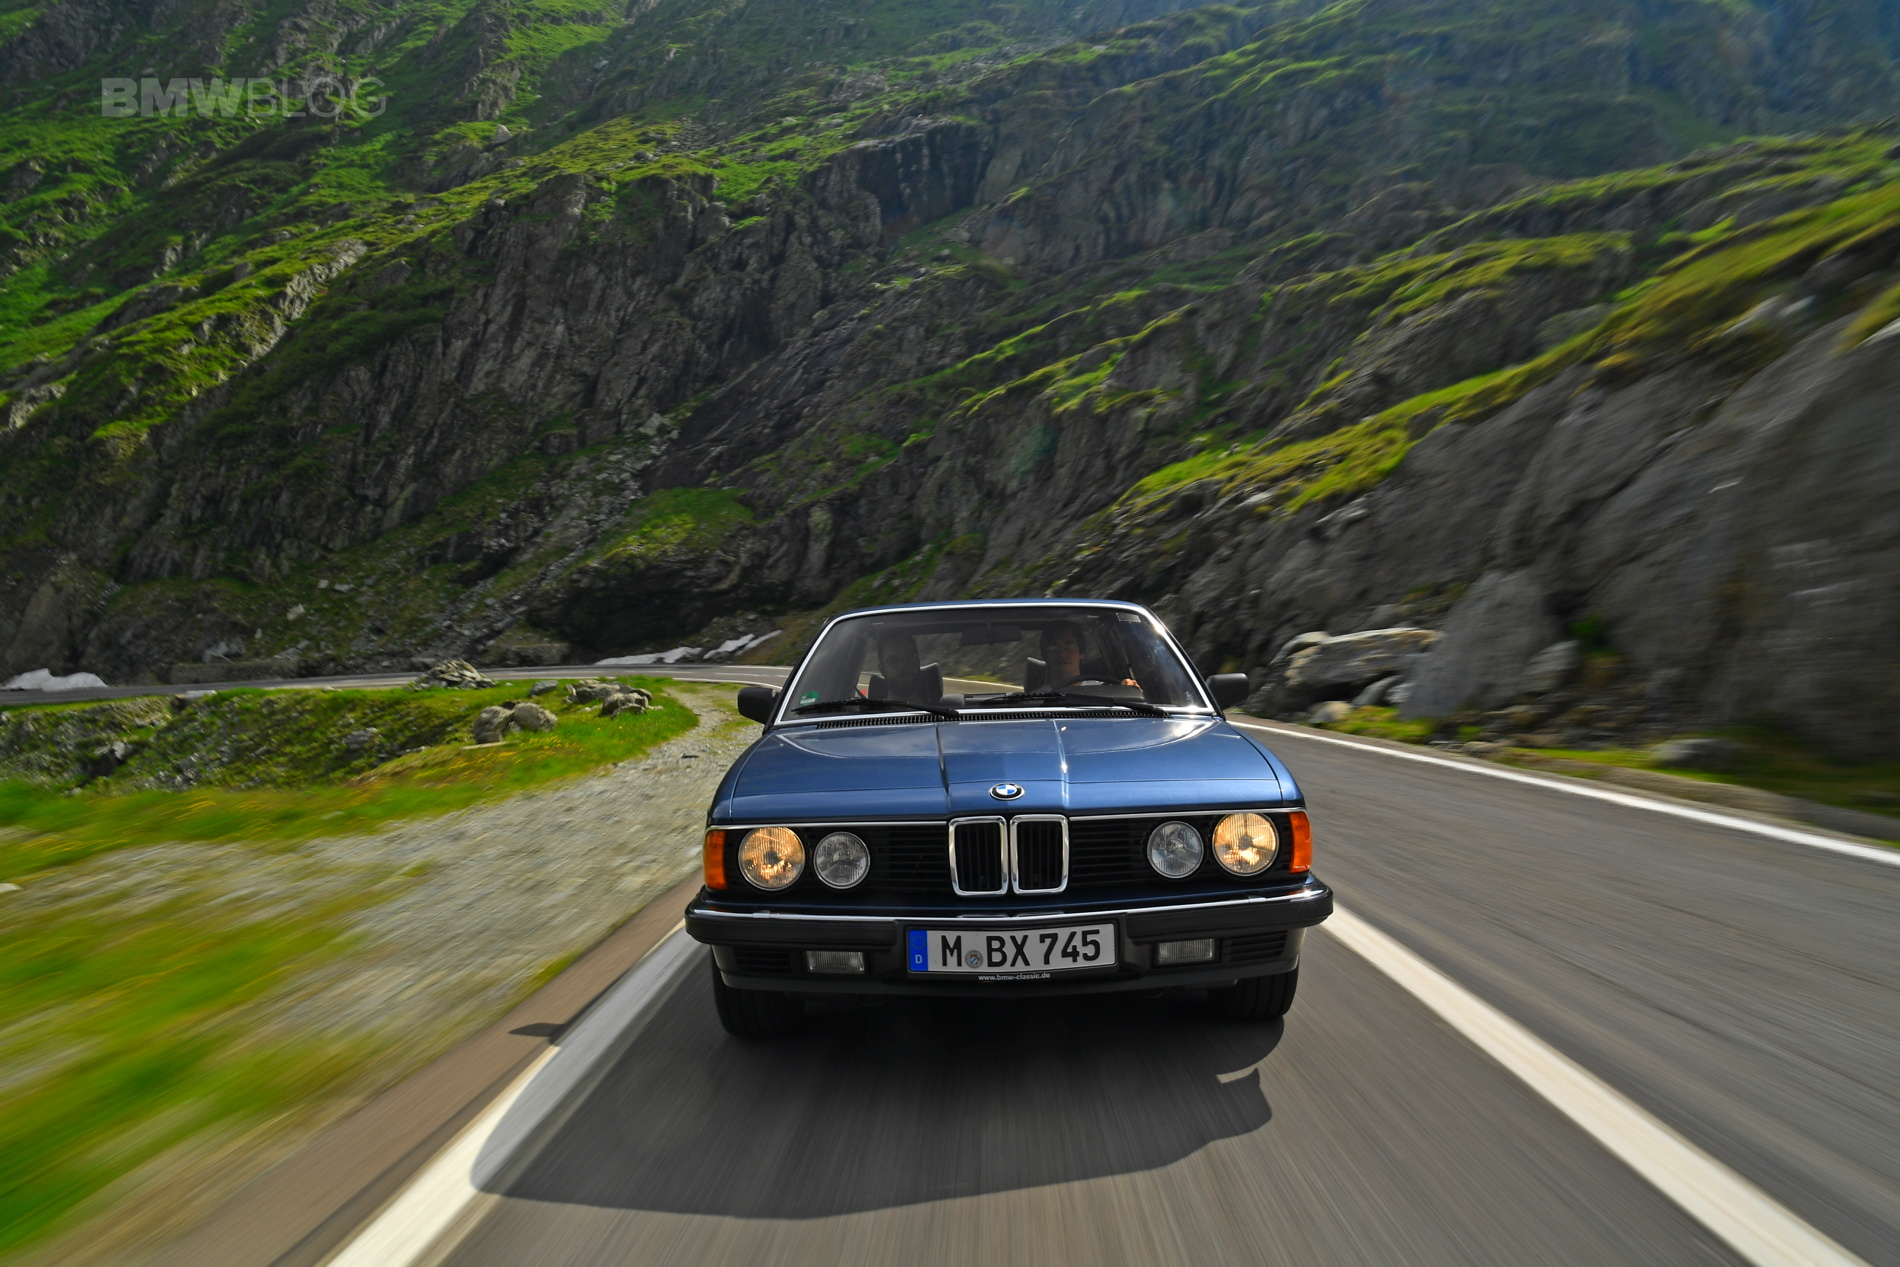 BMW E32 7 Series Romania 45